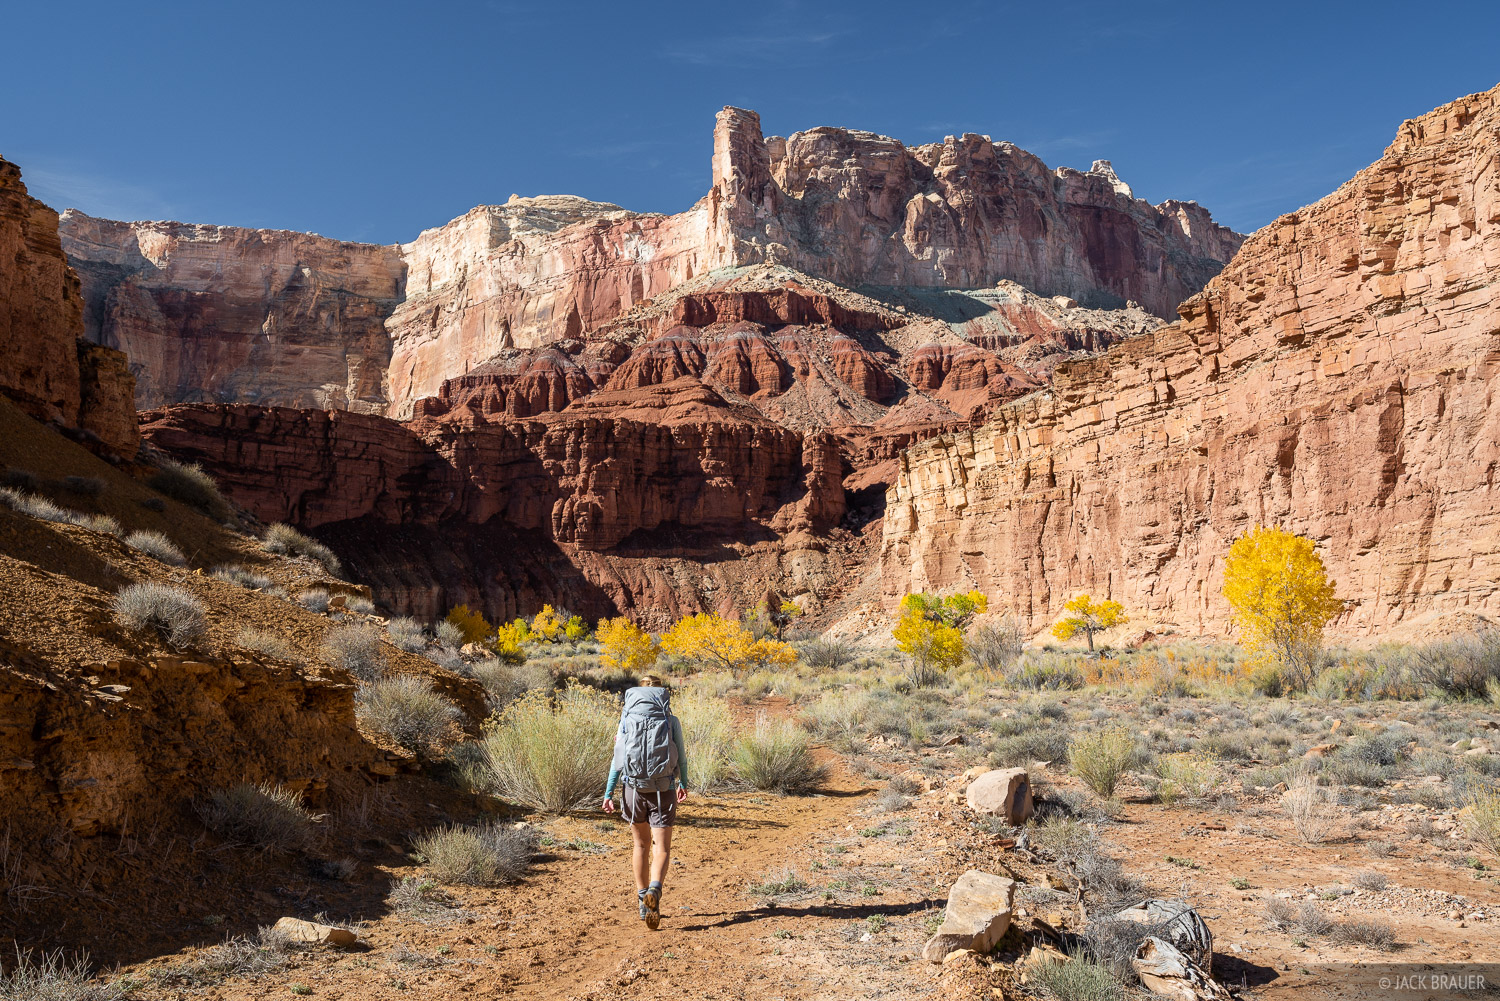 Hiking near Muddy Creek - San Rafael Swell, Utah.